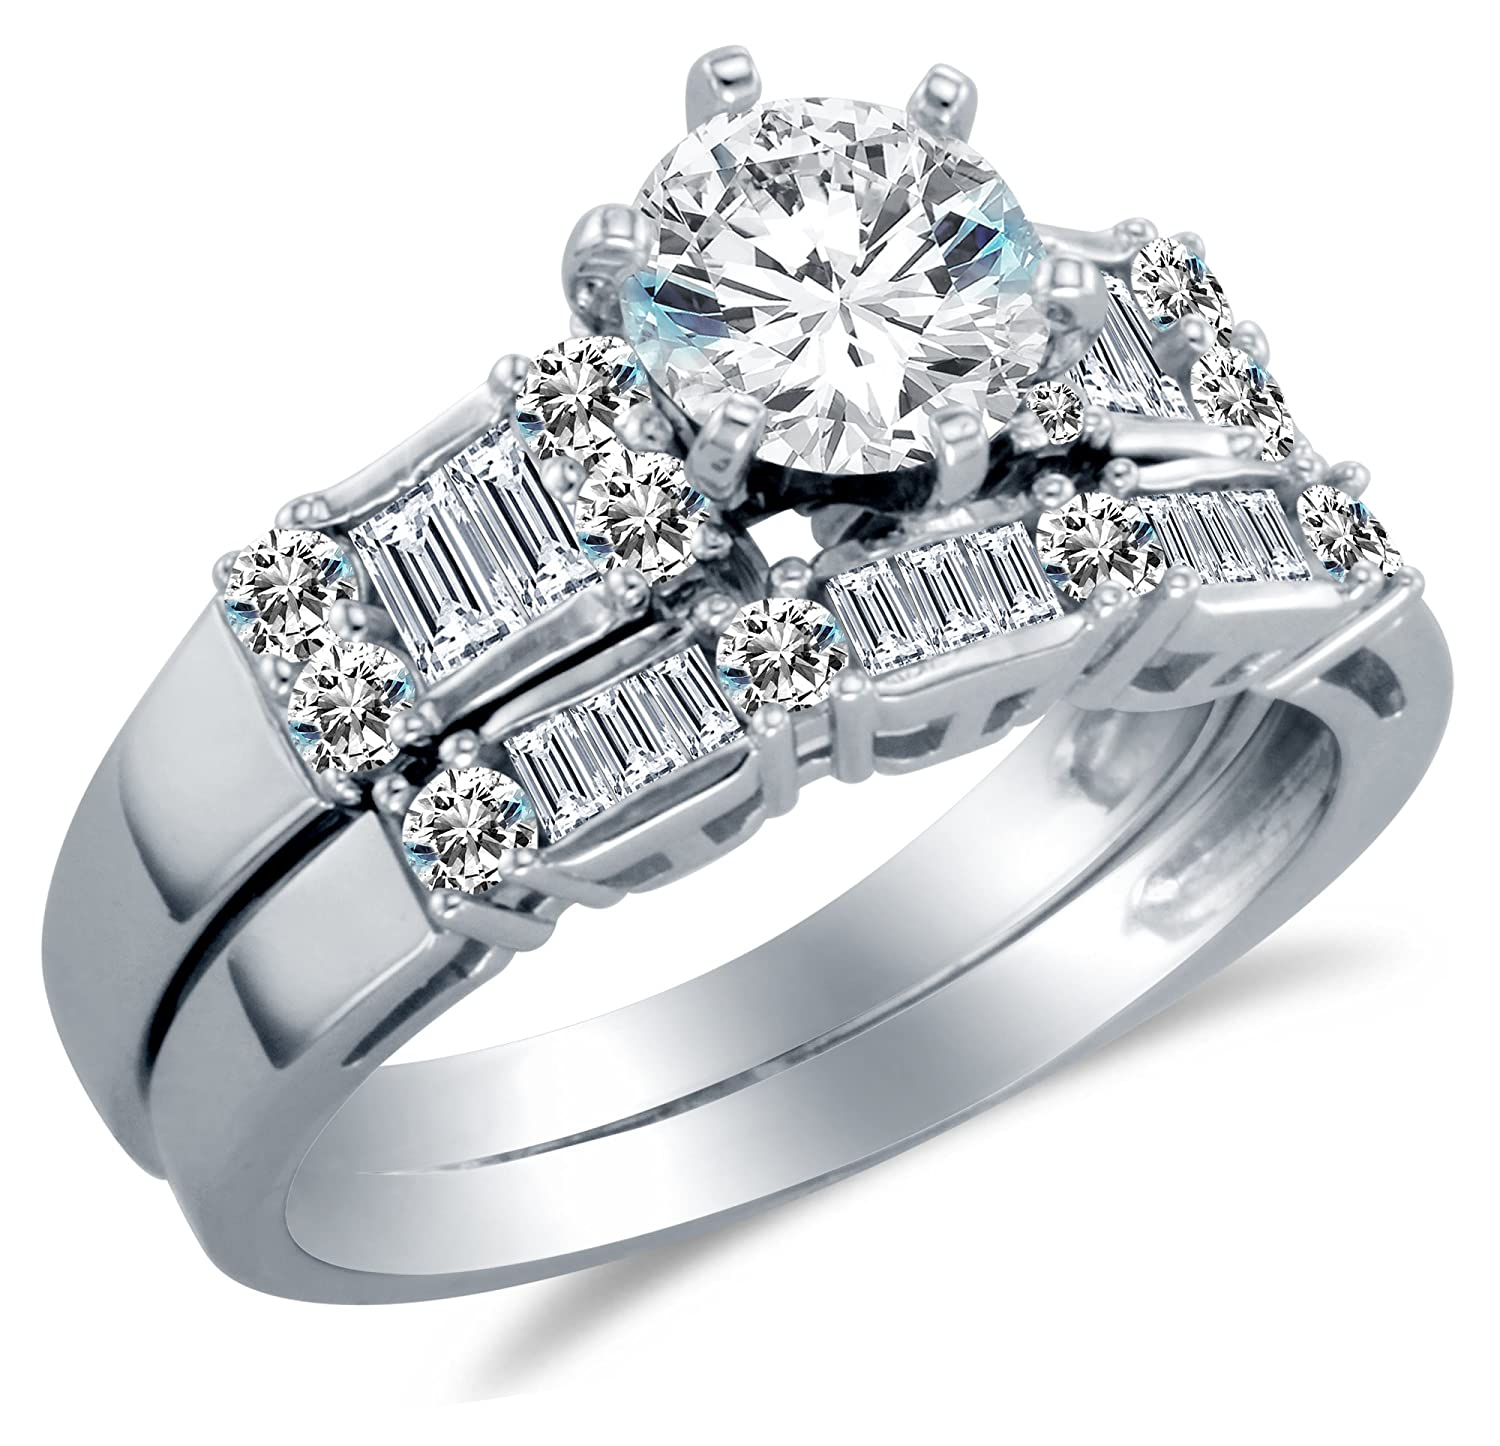 14K White Gold Cubic Zirconia Engagement Ring with Matching Wedding ...